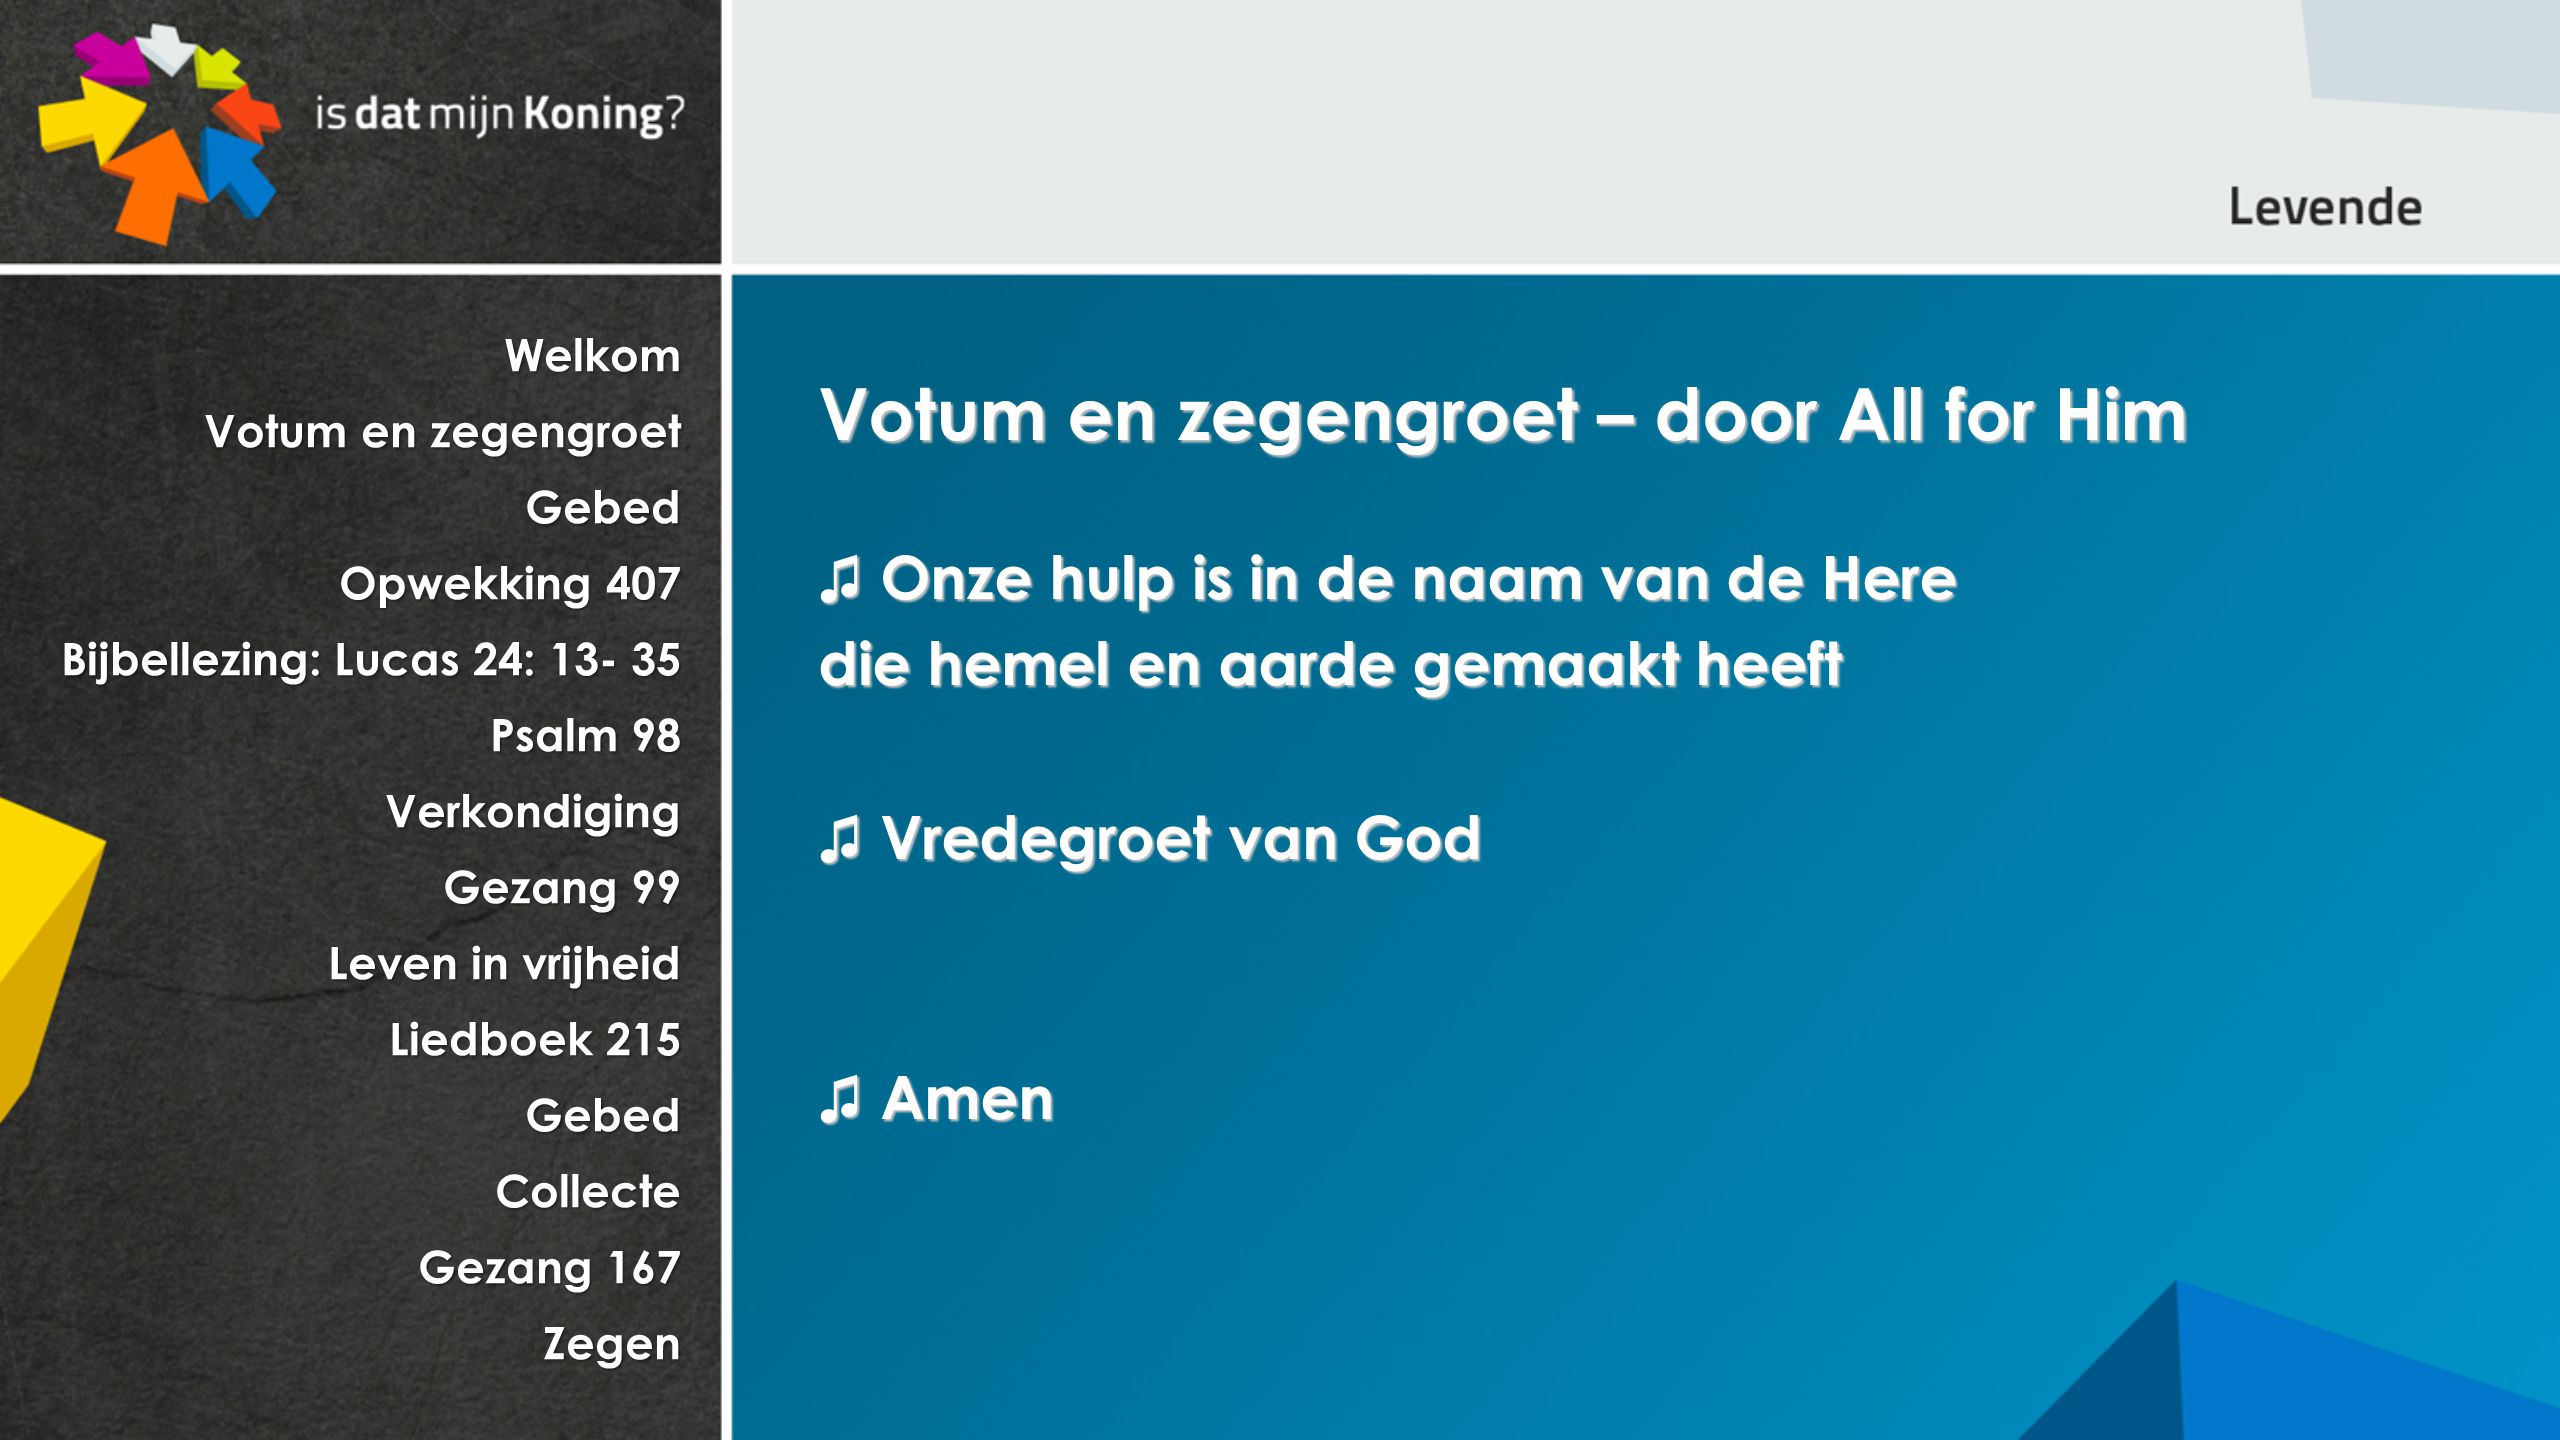 Votum en zegengroet – door All for Him